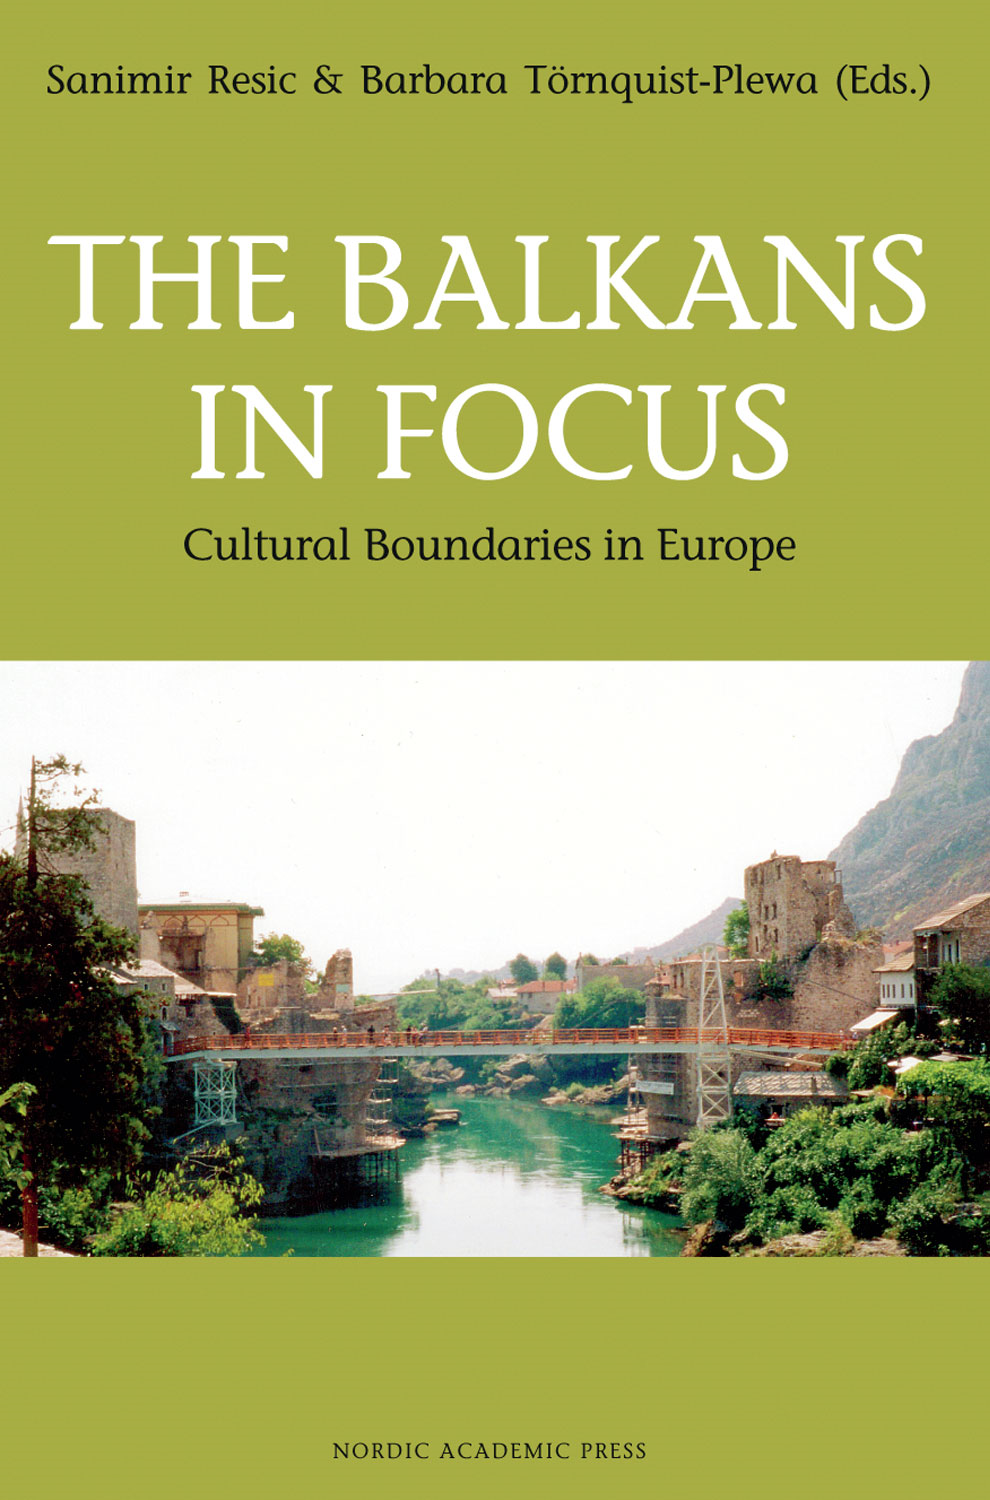 The Balkans in Focus: Cultural Boundaries in Europe